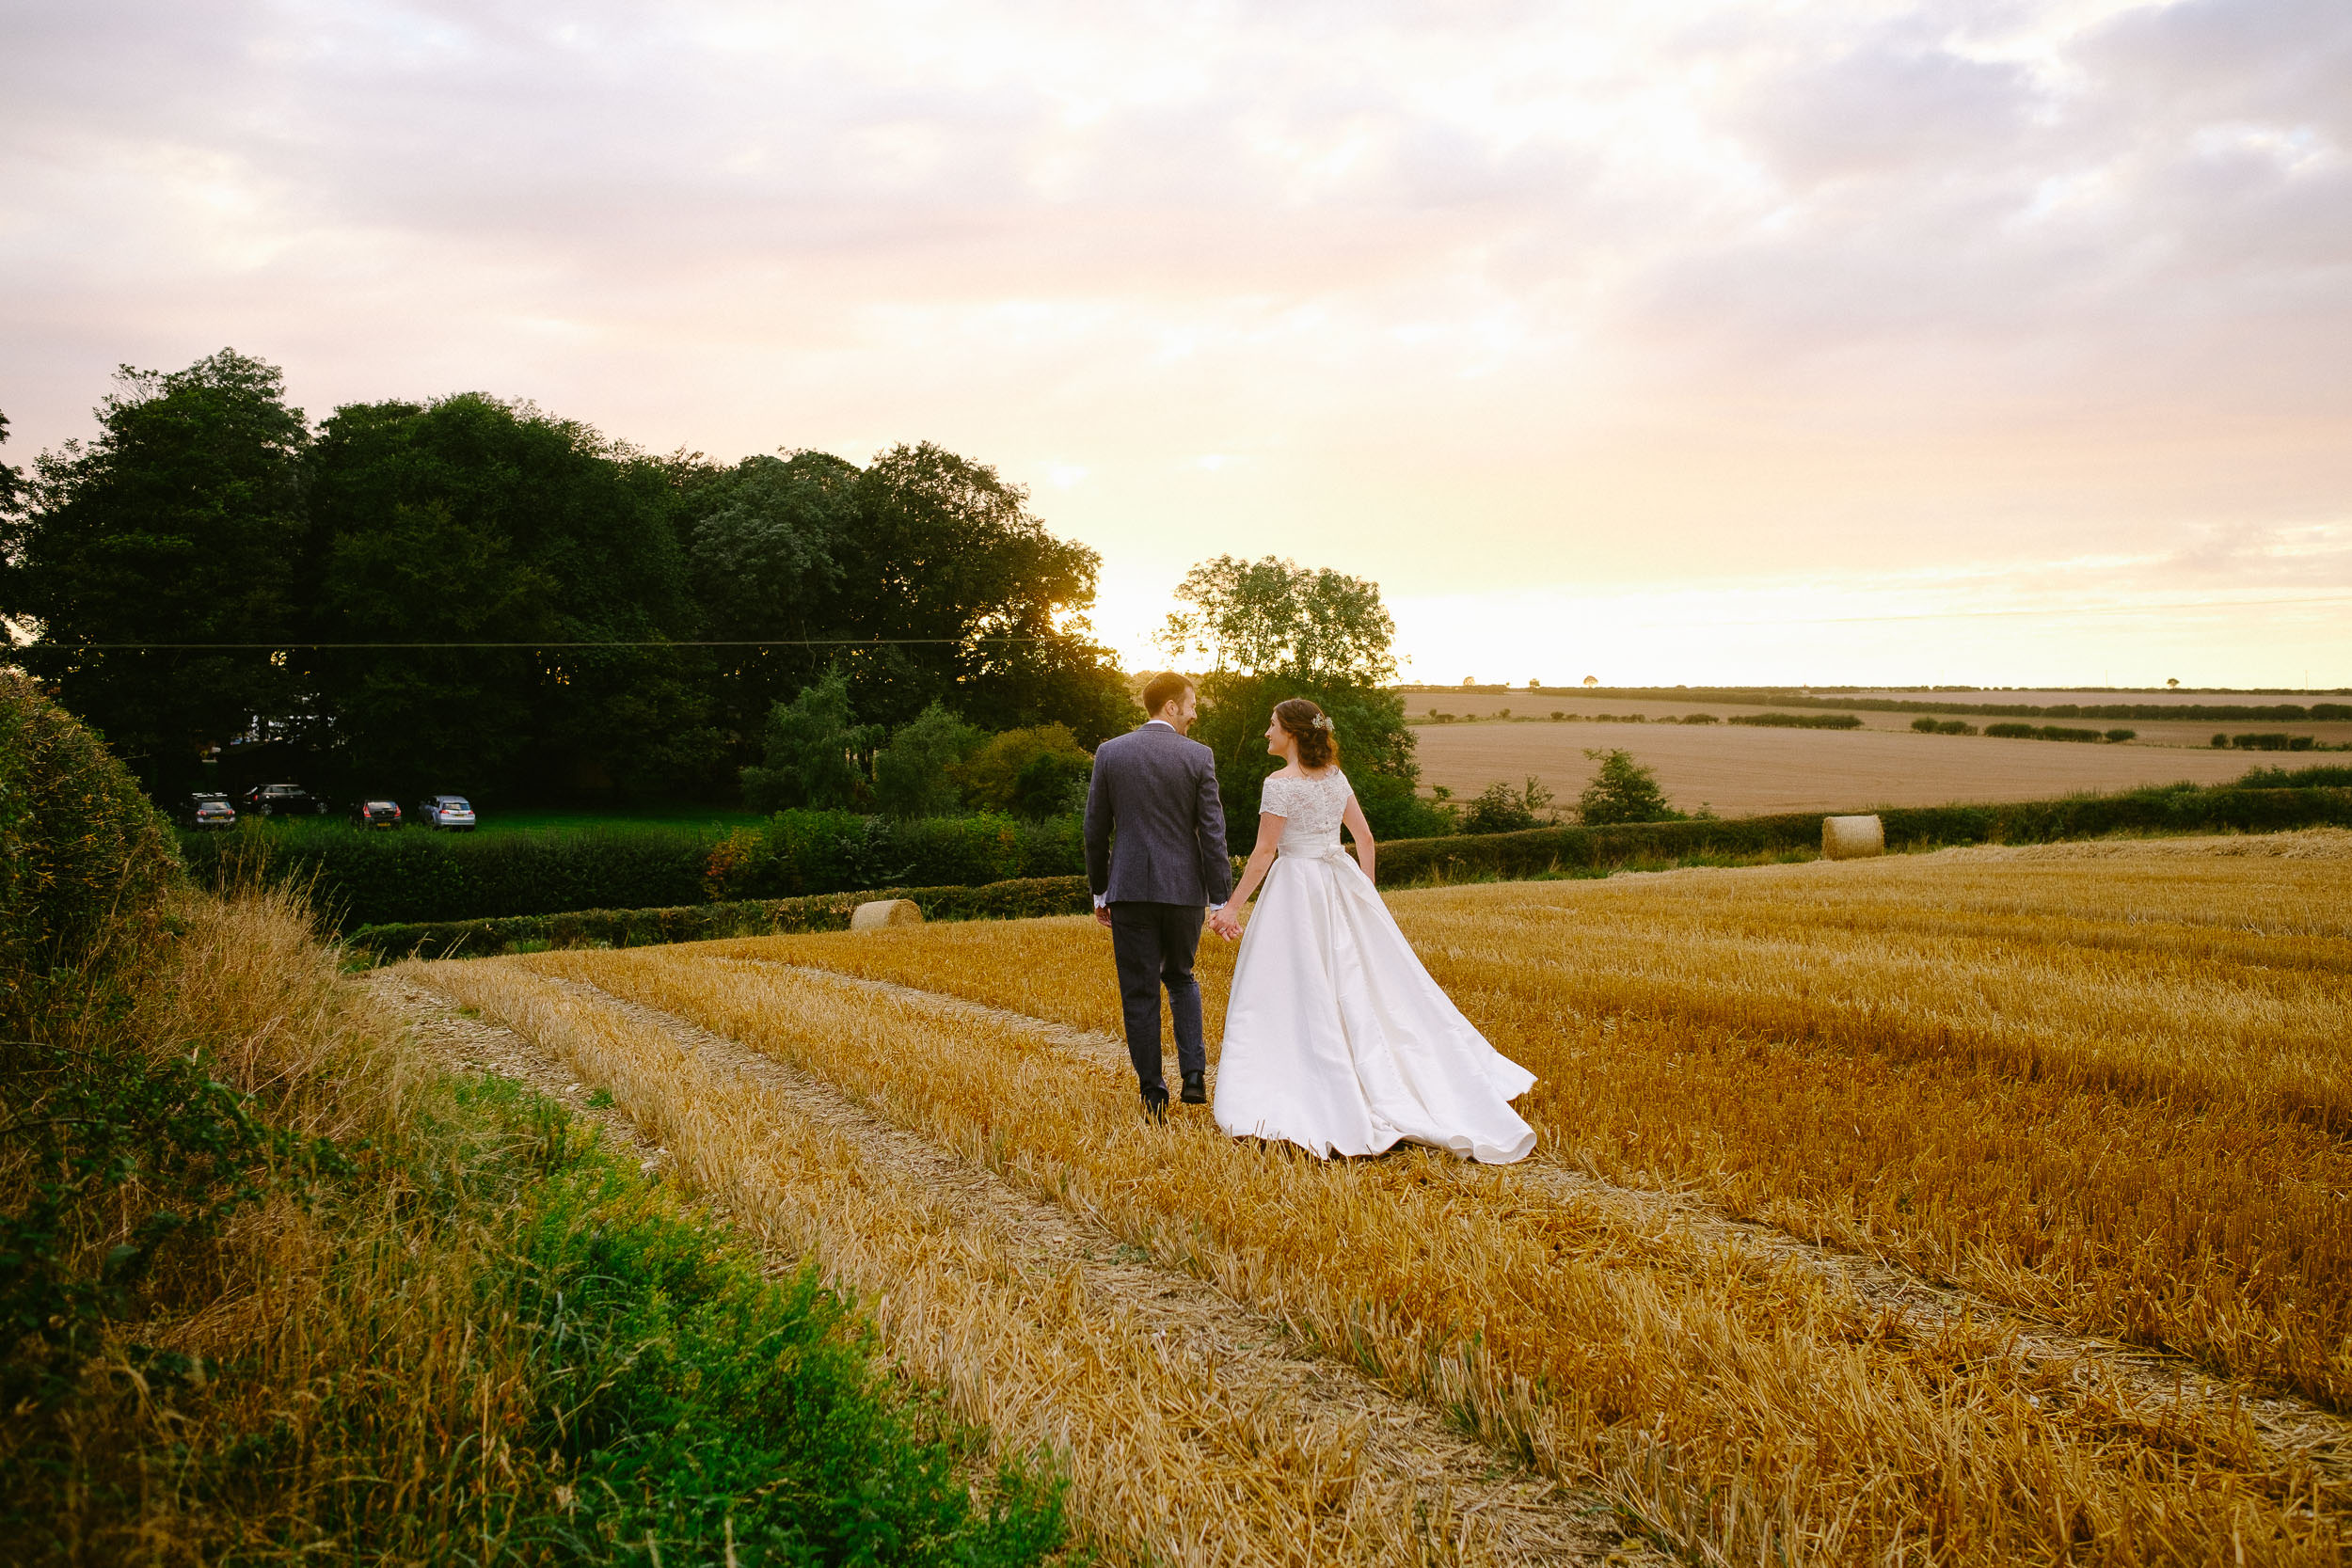 Walking back to Dale Farm after bride and groom portraits